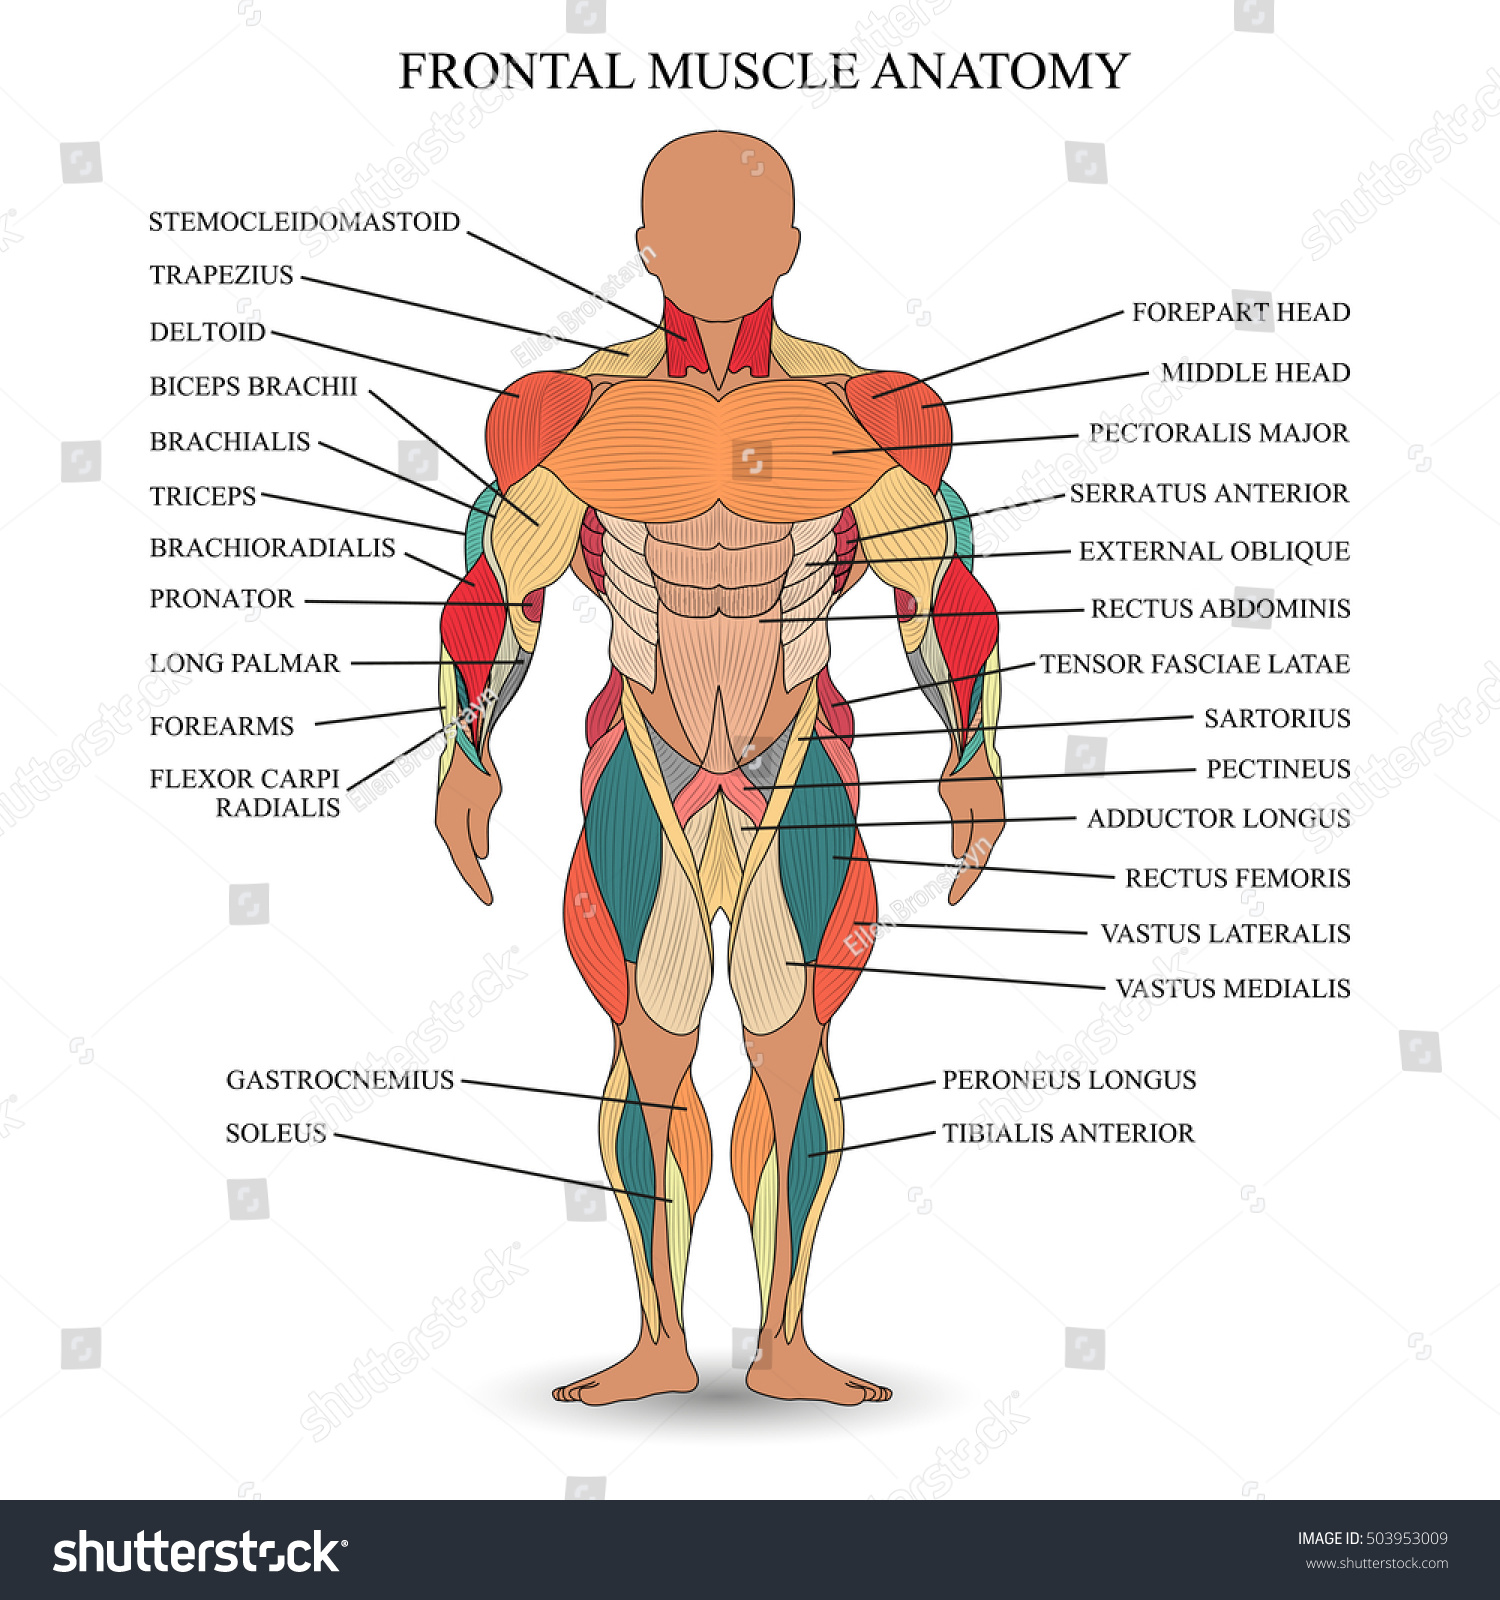 anatomy human muscles front template medical のベクター画像素材